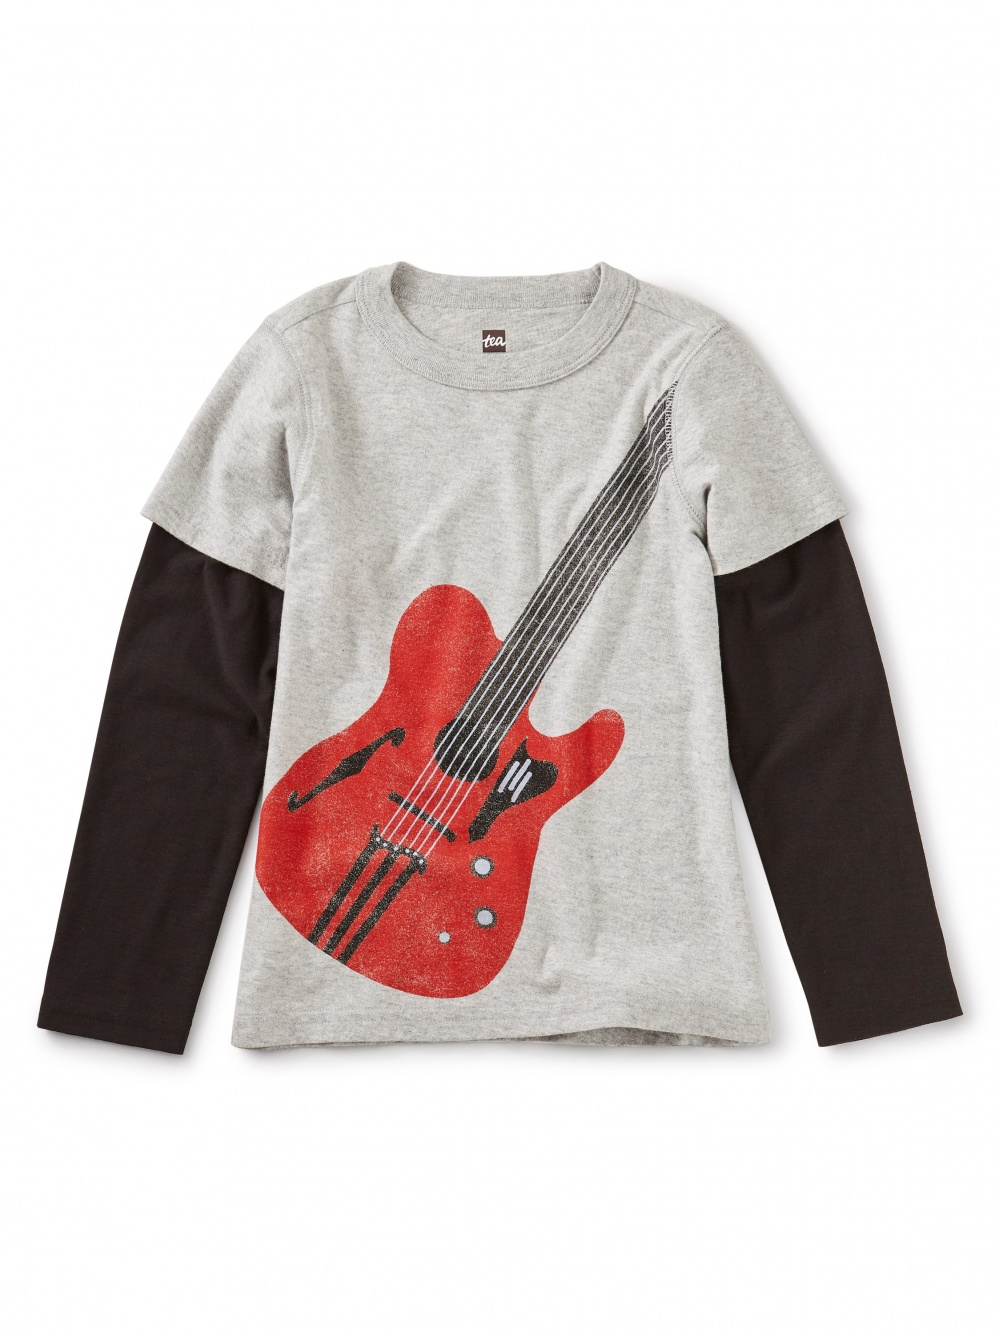 La Guitarra Graphic Tee